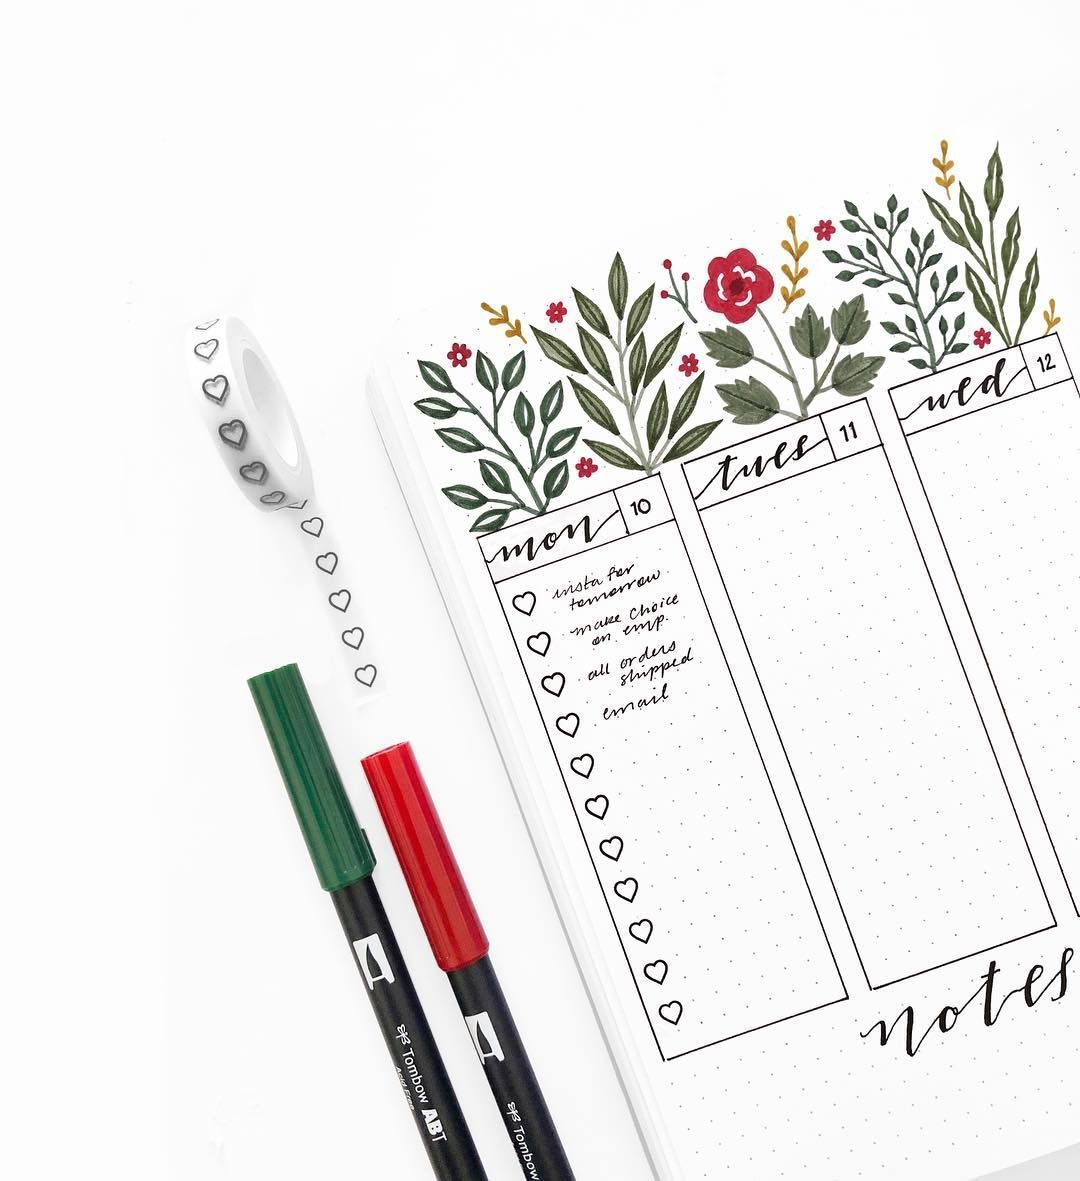 Archer And Olive on Instagram Yesterday my good friend and fellow stationery lovershop owner thepapercraftpantry sent me some goodies in the mail which she designed Yeste...